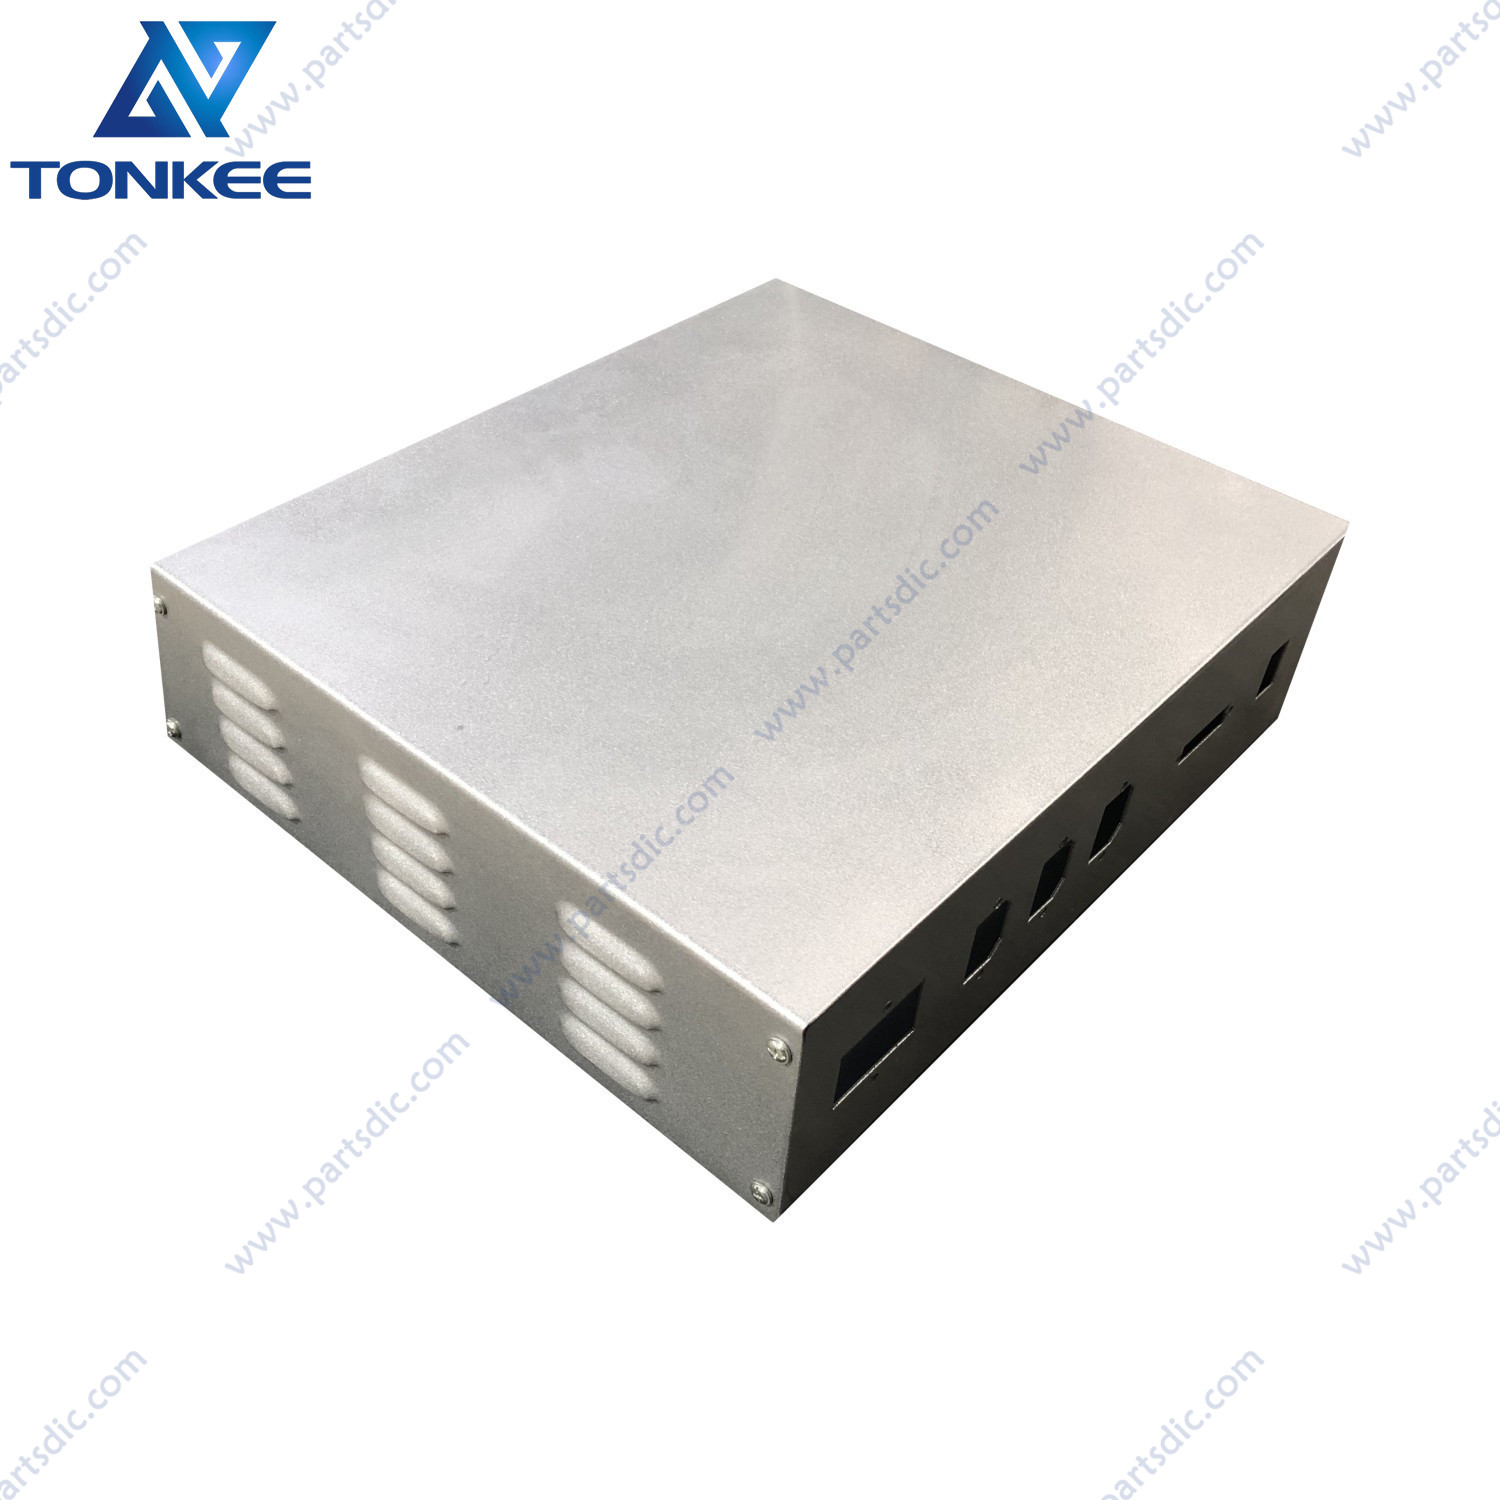 factory customize STS Static Transfer Switch cabinet enclosure Power Distribution cabinet for EATON